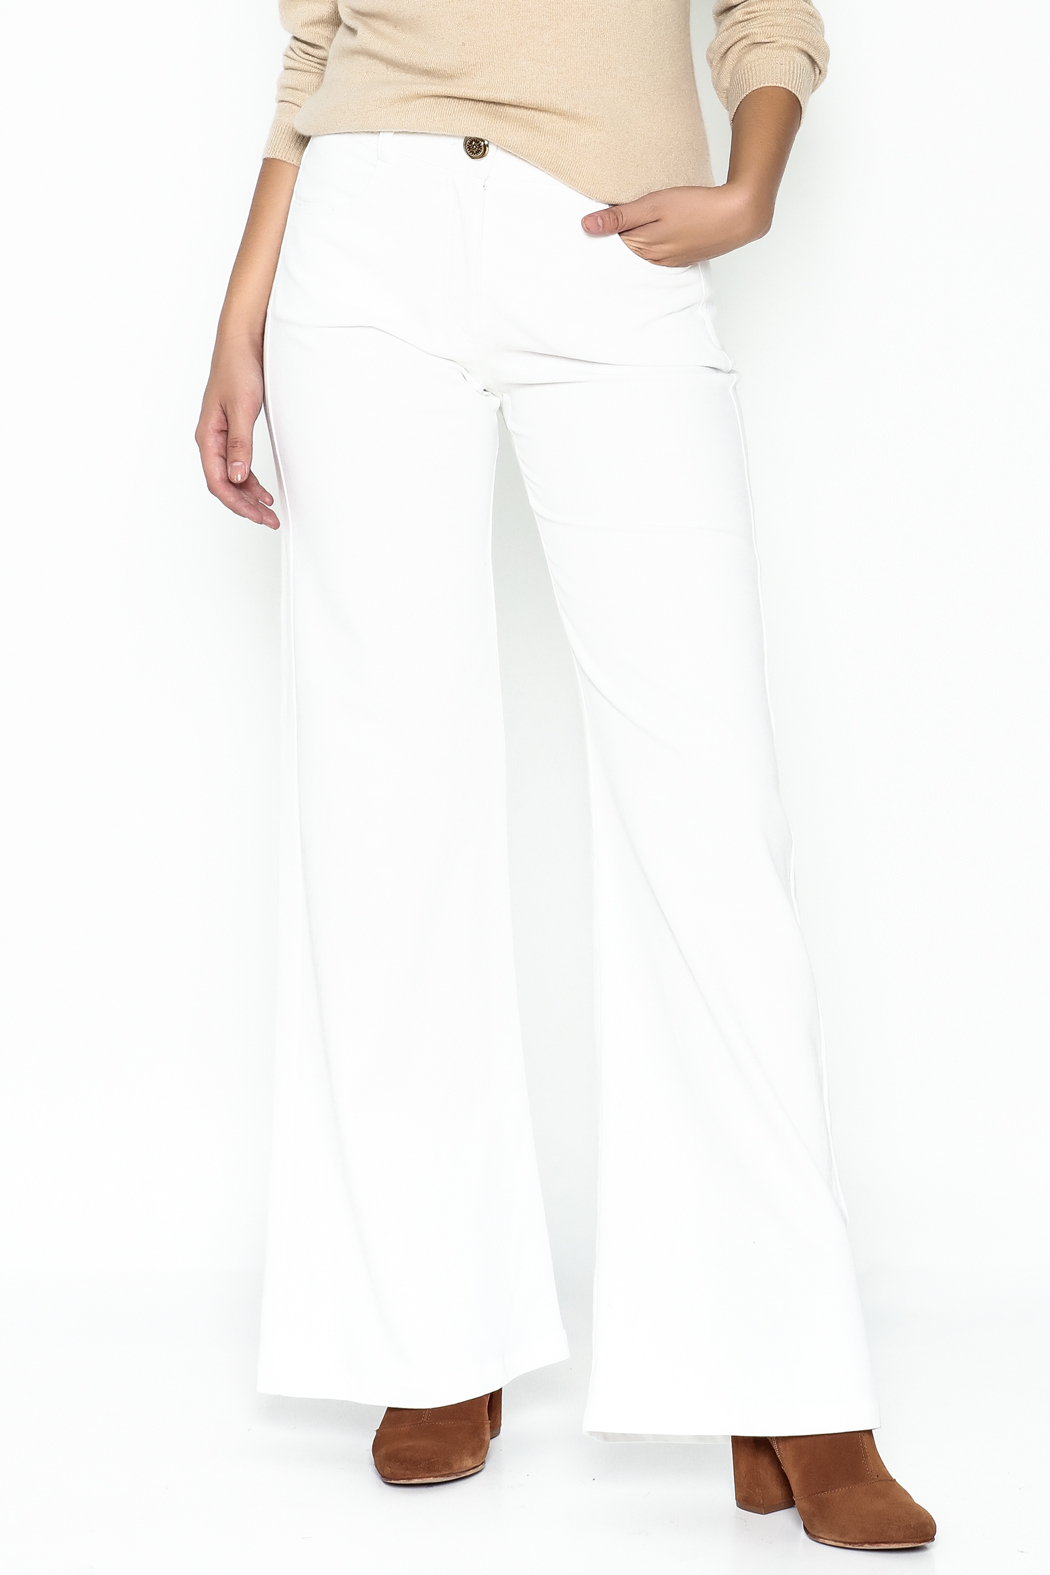 Julie Dorst White Denim Flare Pants - Main Image